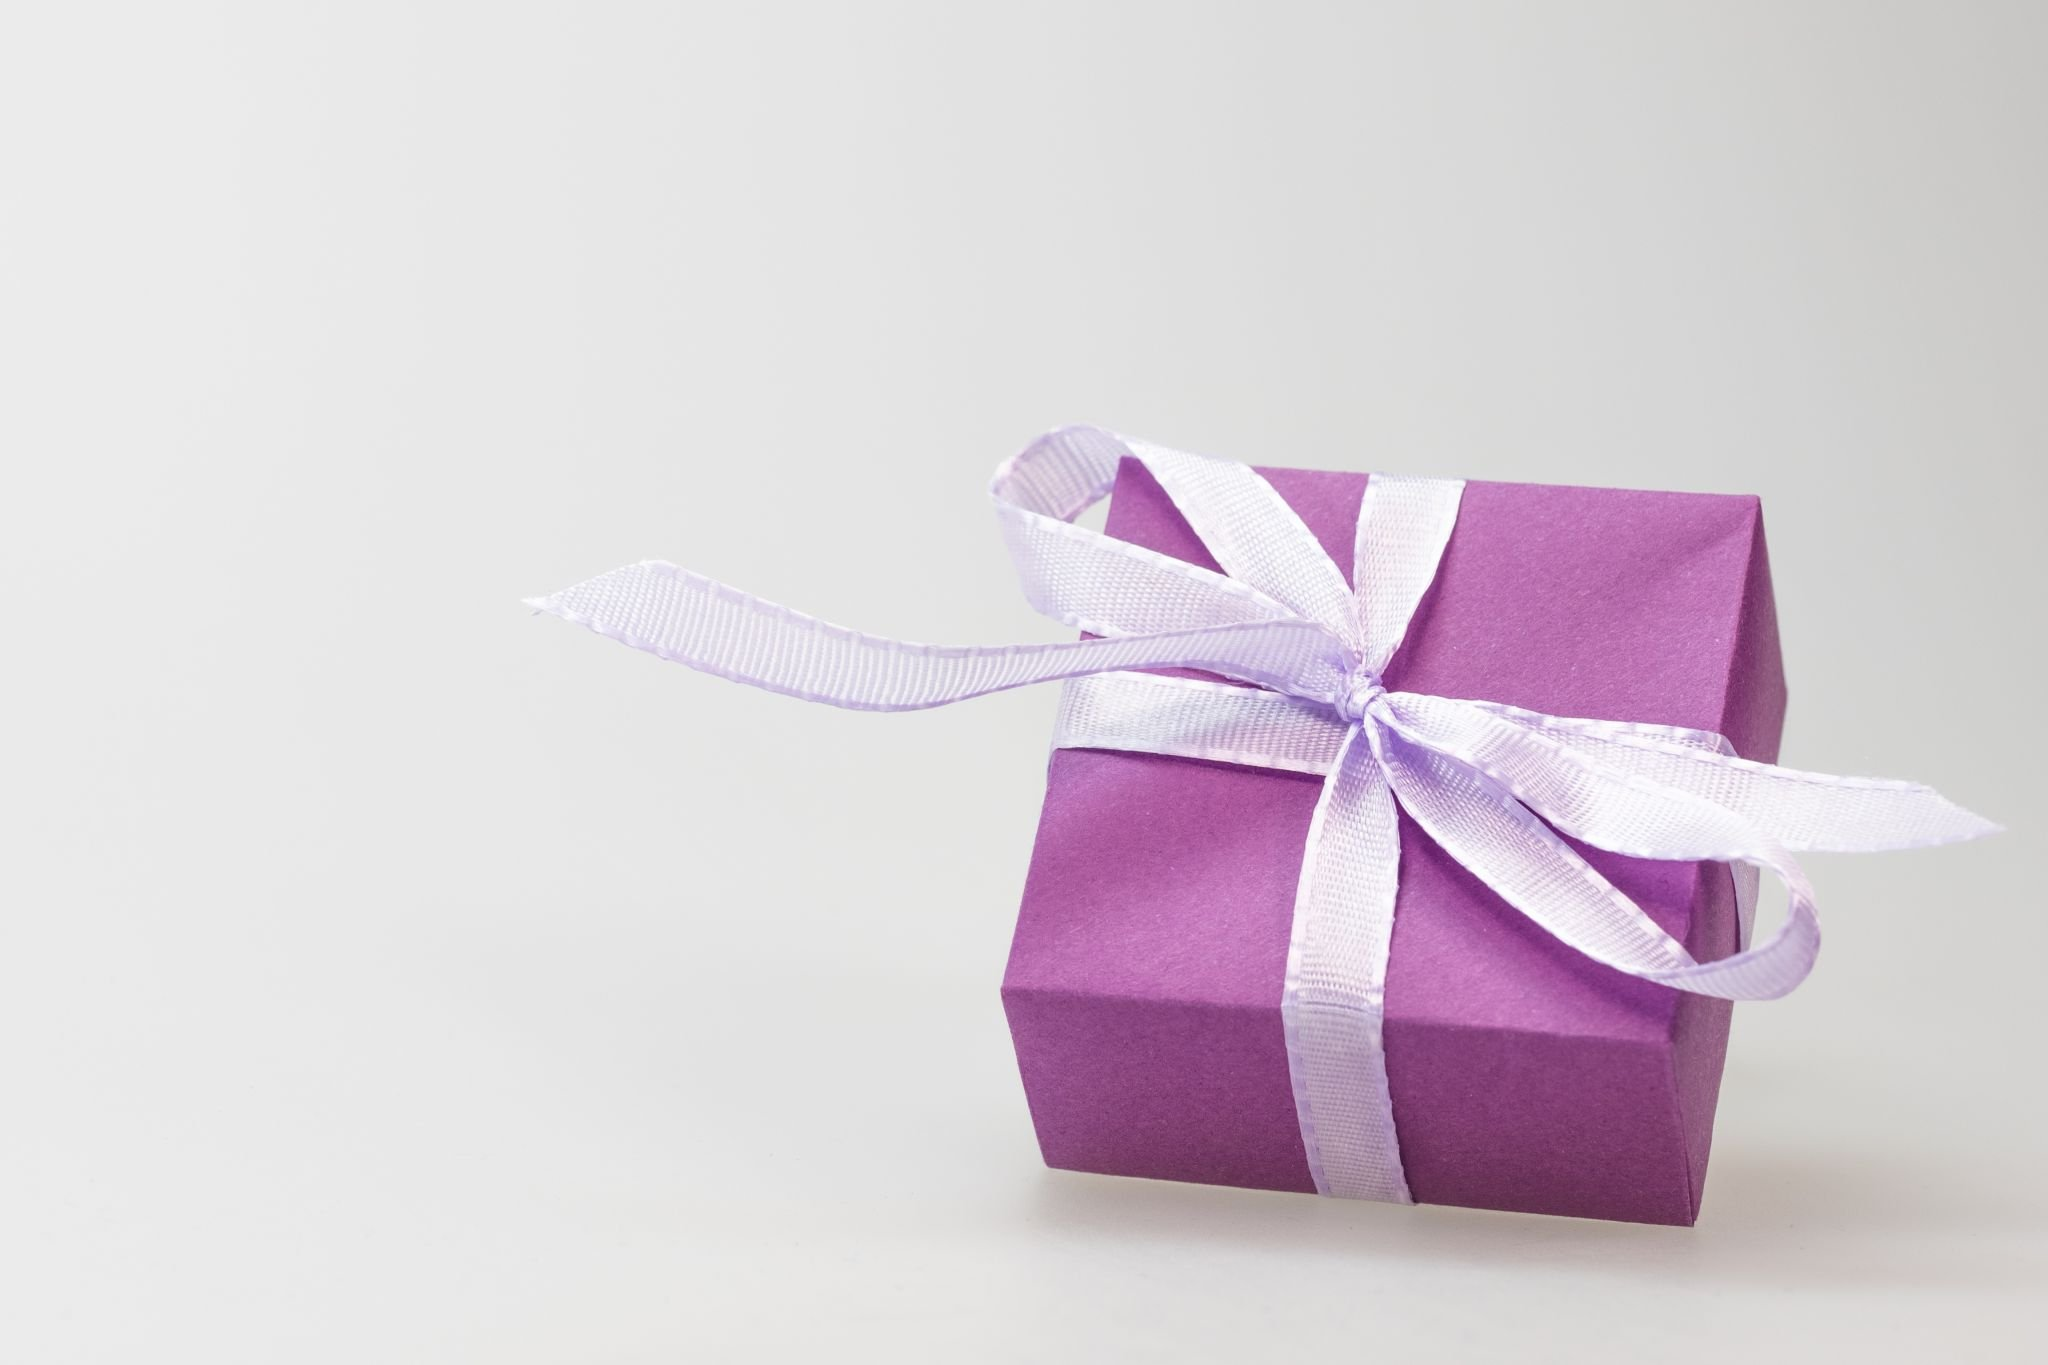 Small purple gift box with white ribbon